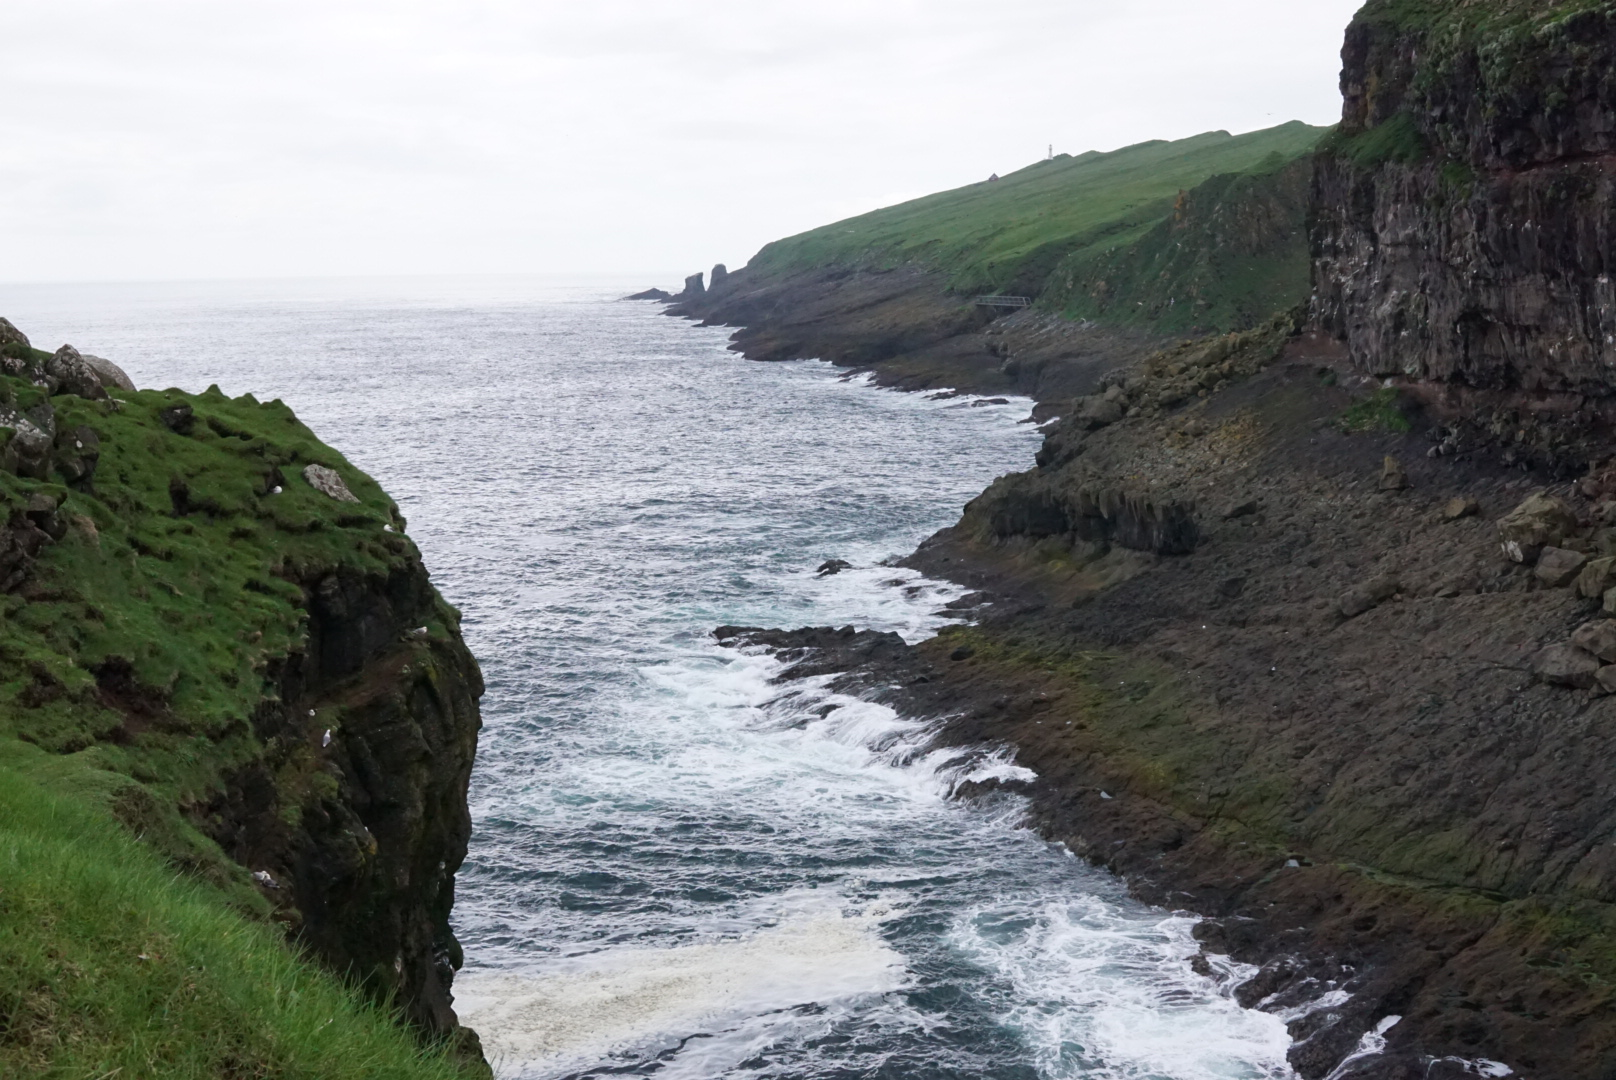 View of the ocean west of Mykines from the island just above the harbor.